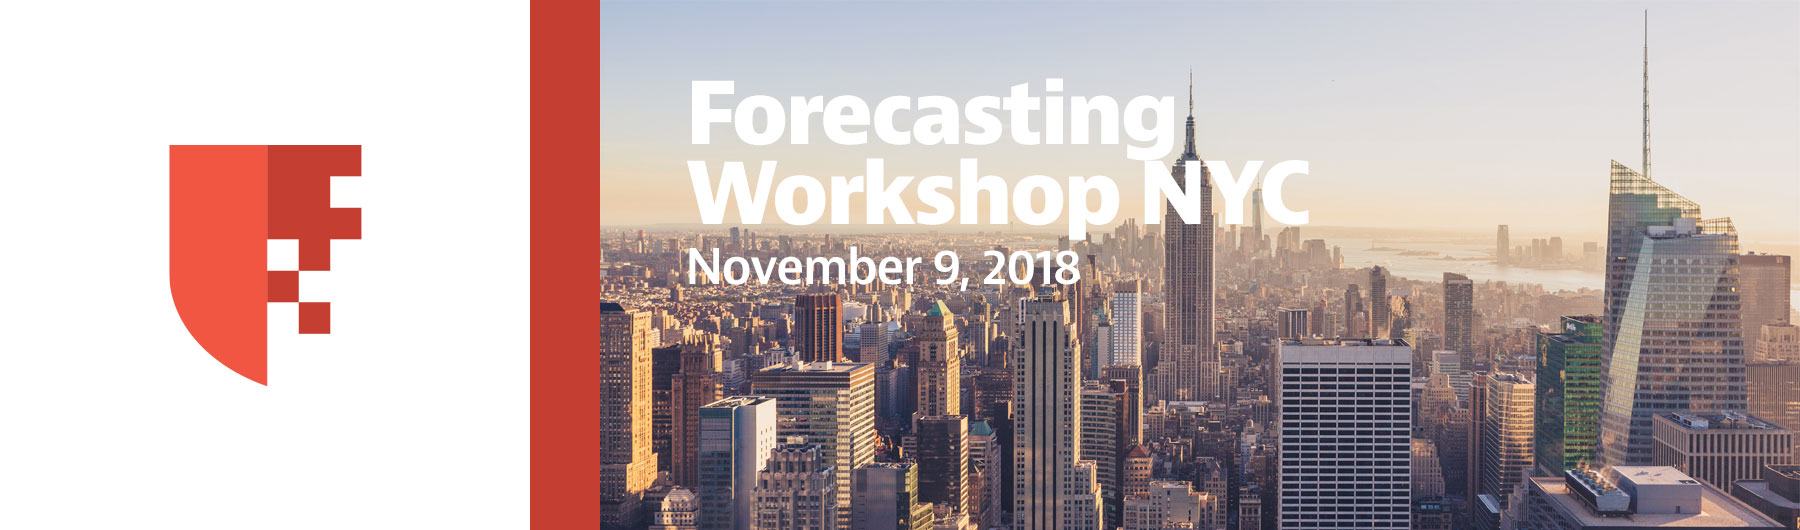 forecasting workshops